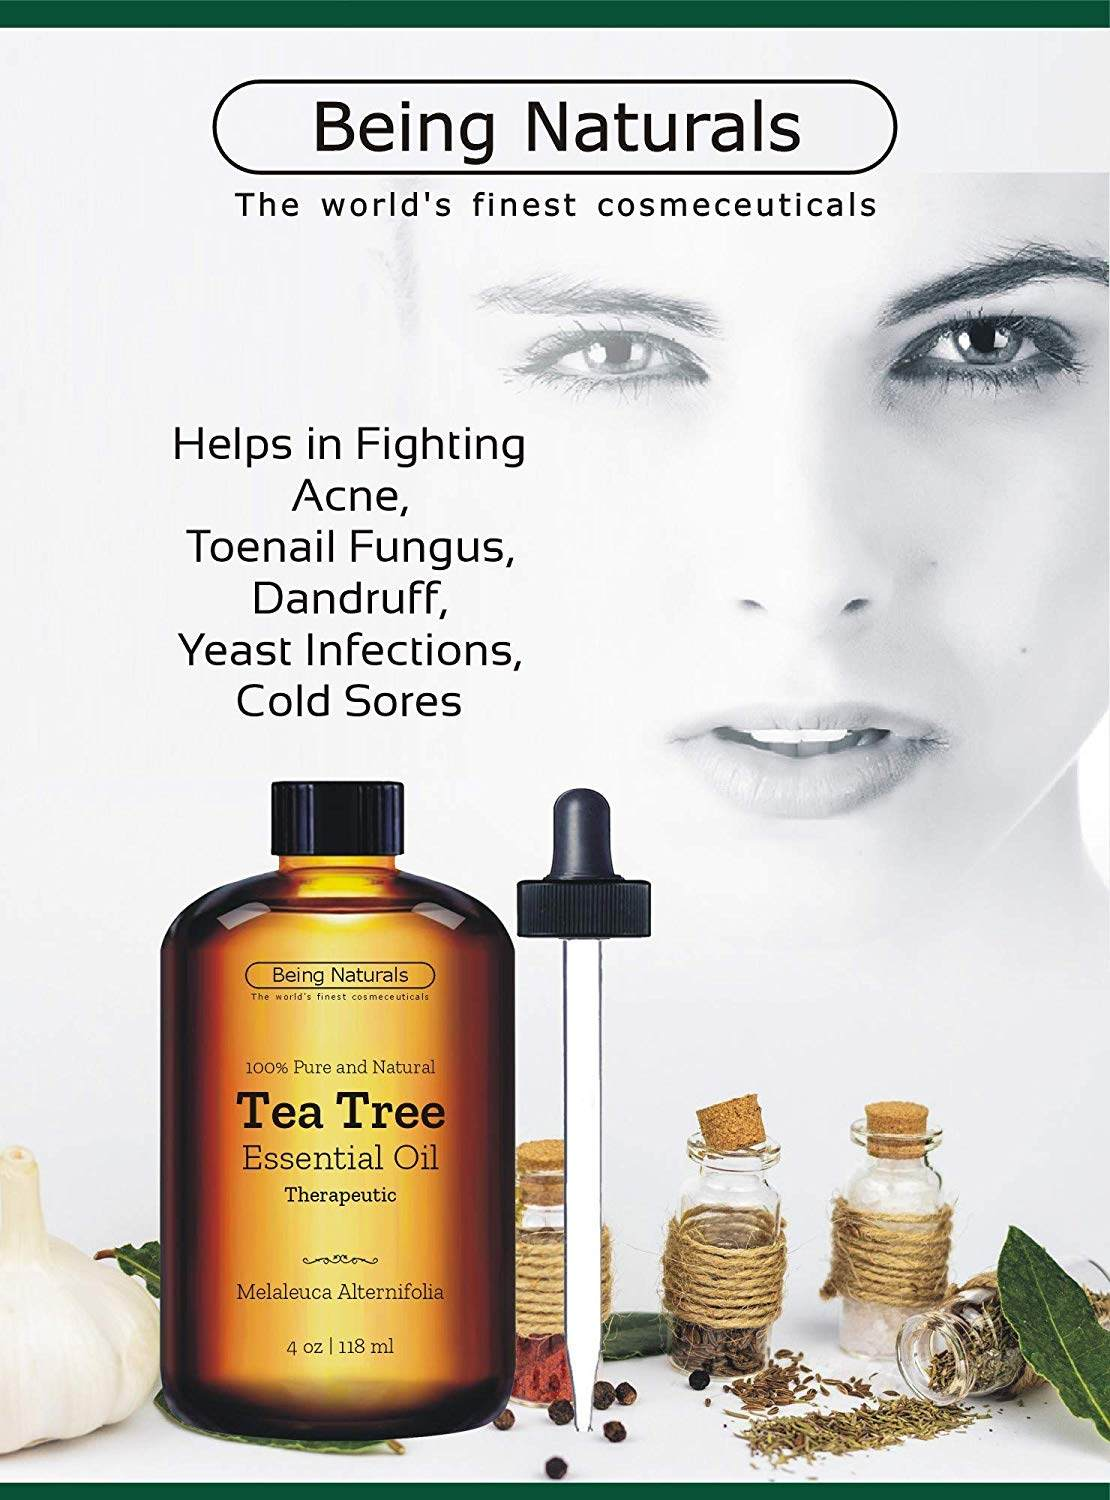 Therapeutic Tea Tree Essential Oil